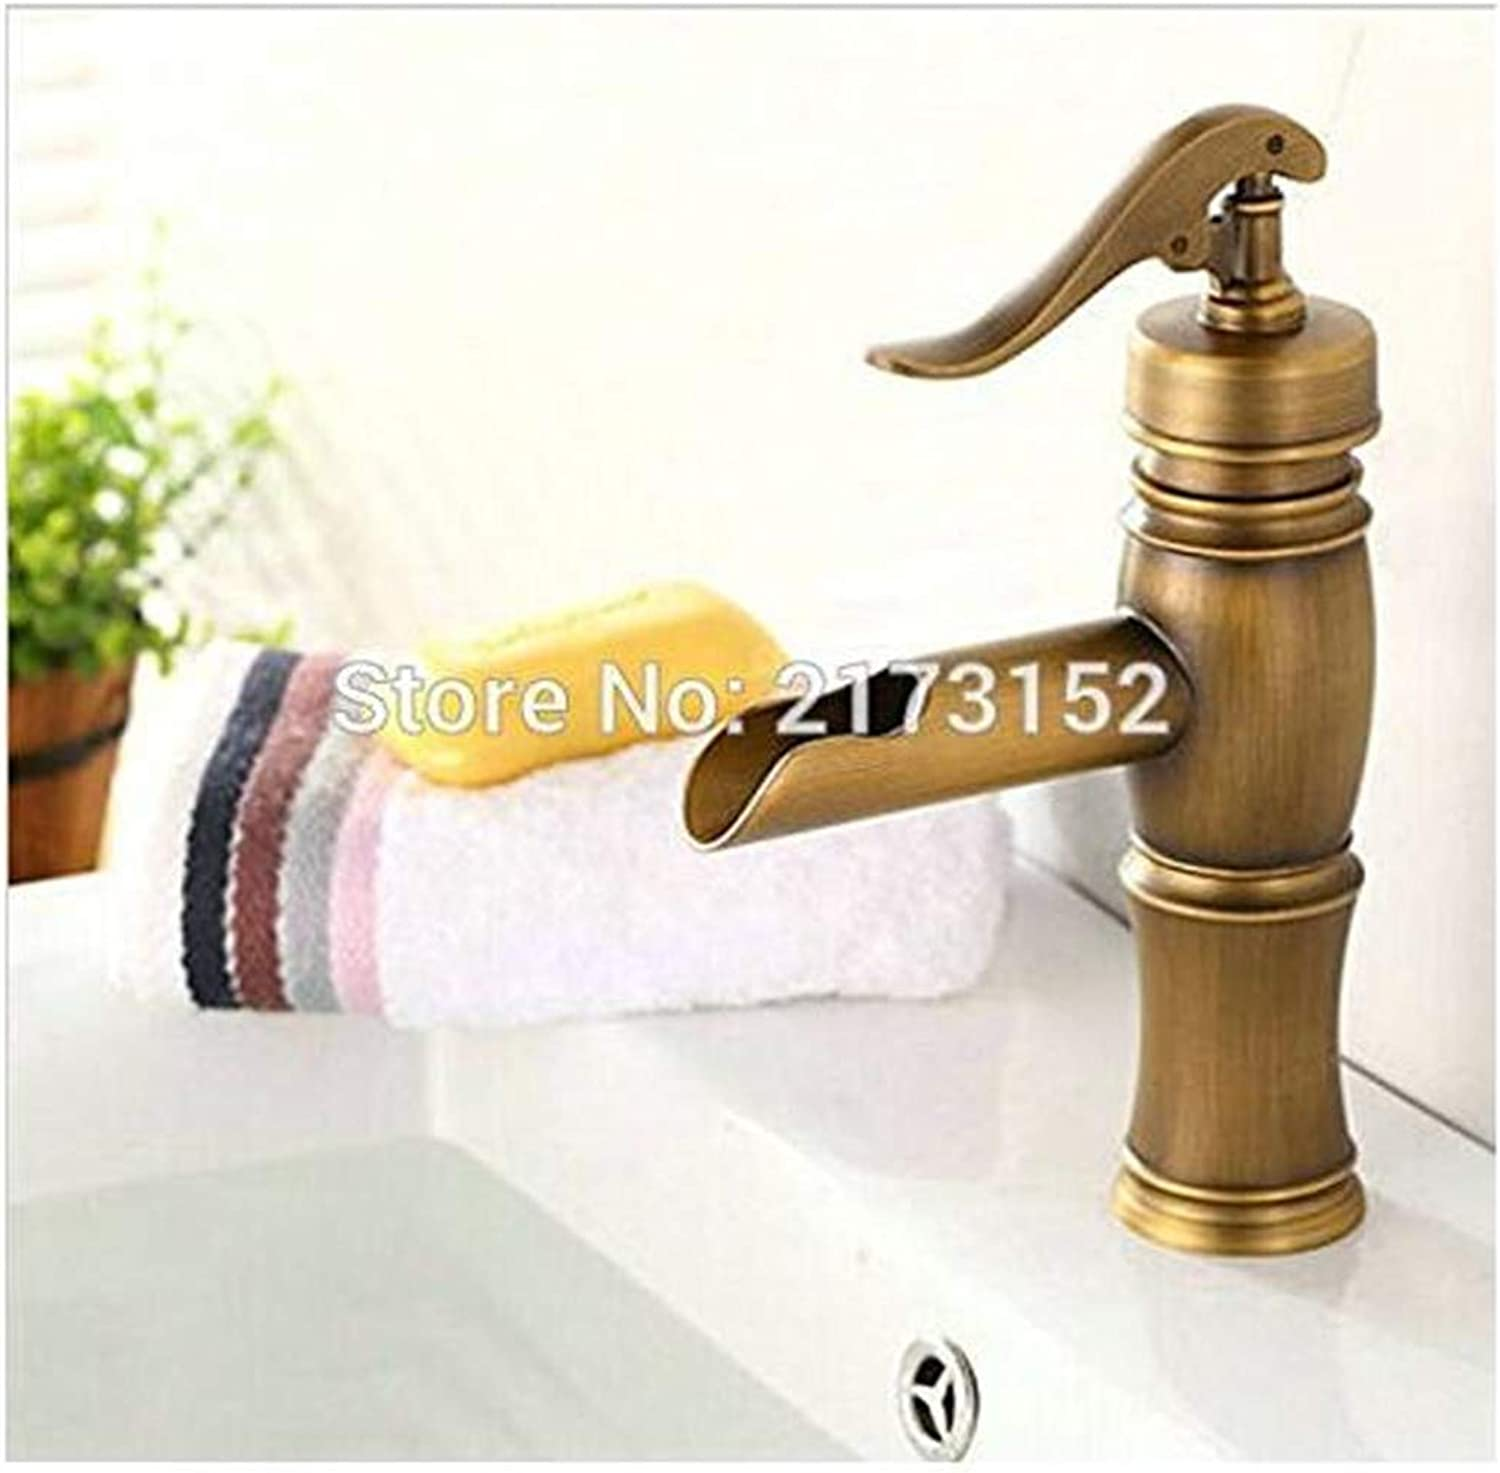 Chrome Brass Kitchen Faucet Antique Brass Waterfall Bathroom Faucet Classic Brass Hot & Cold Brass Basin Sink Mixer Tap